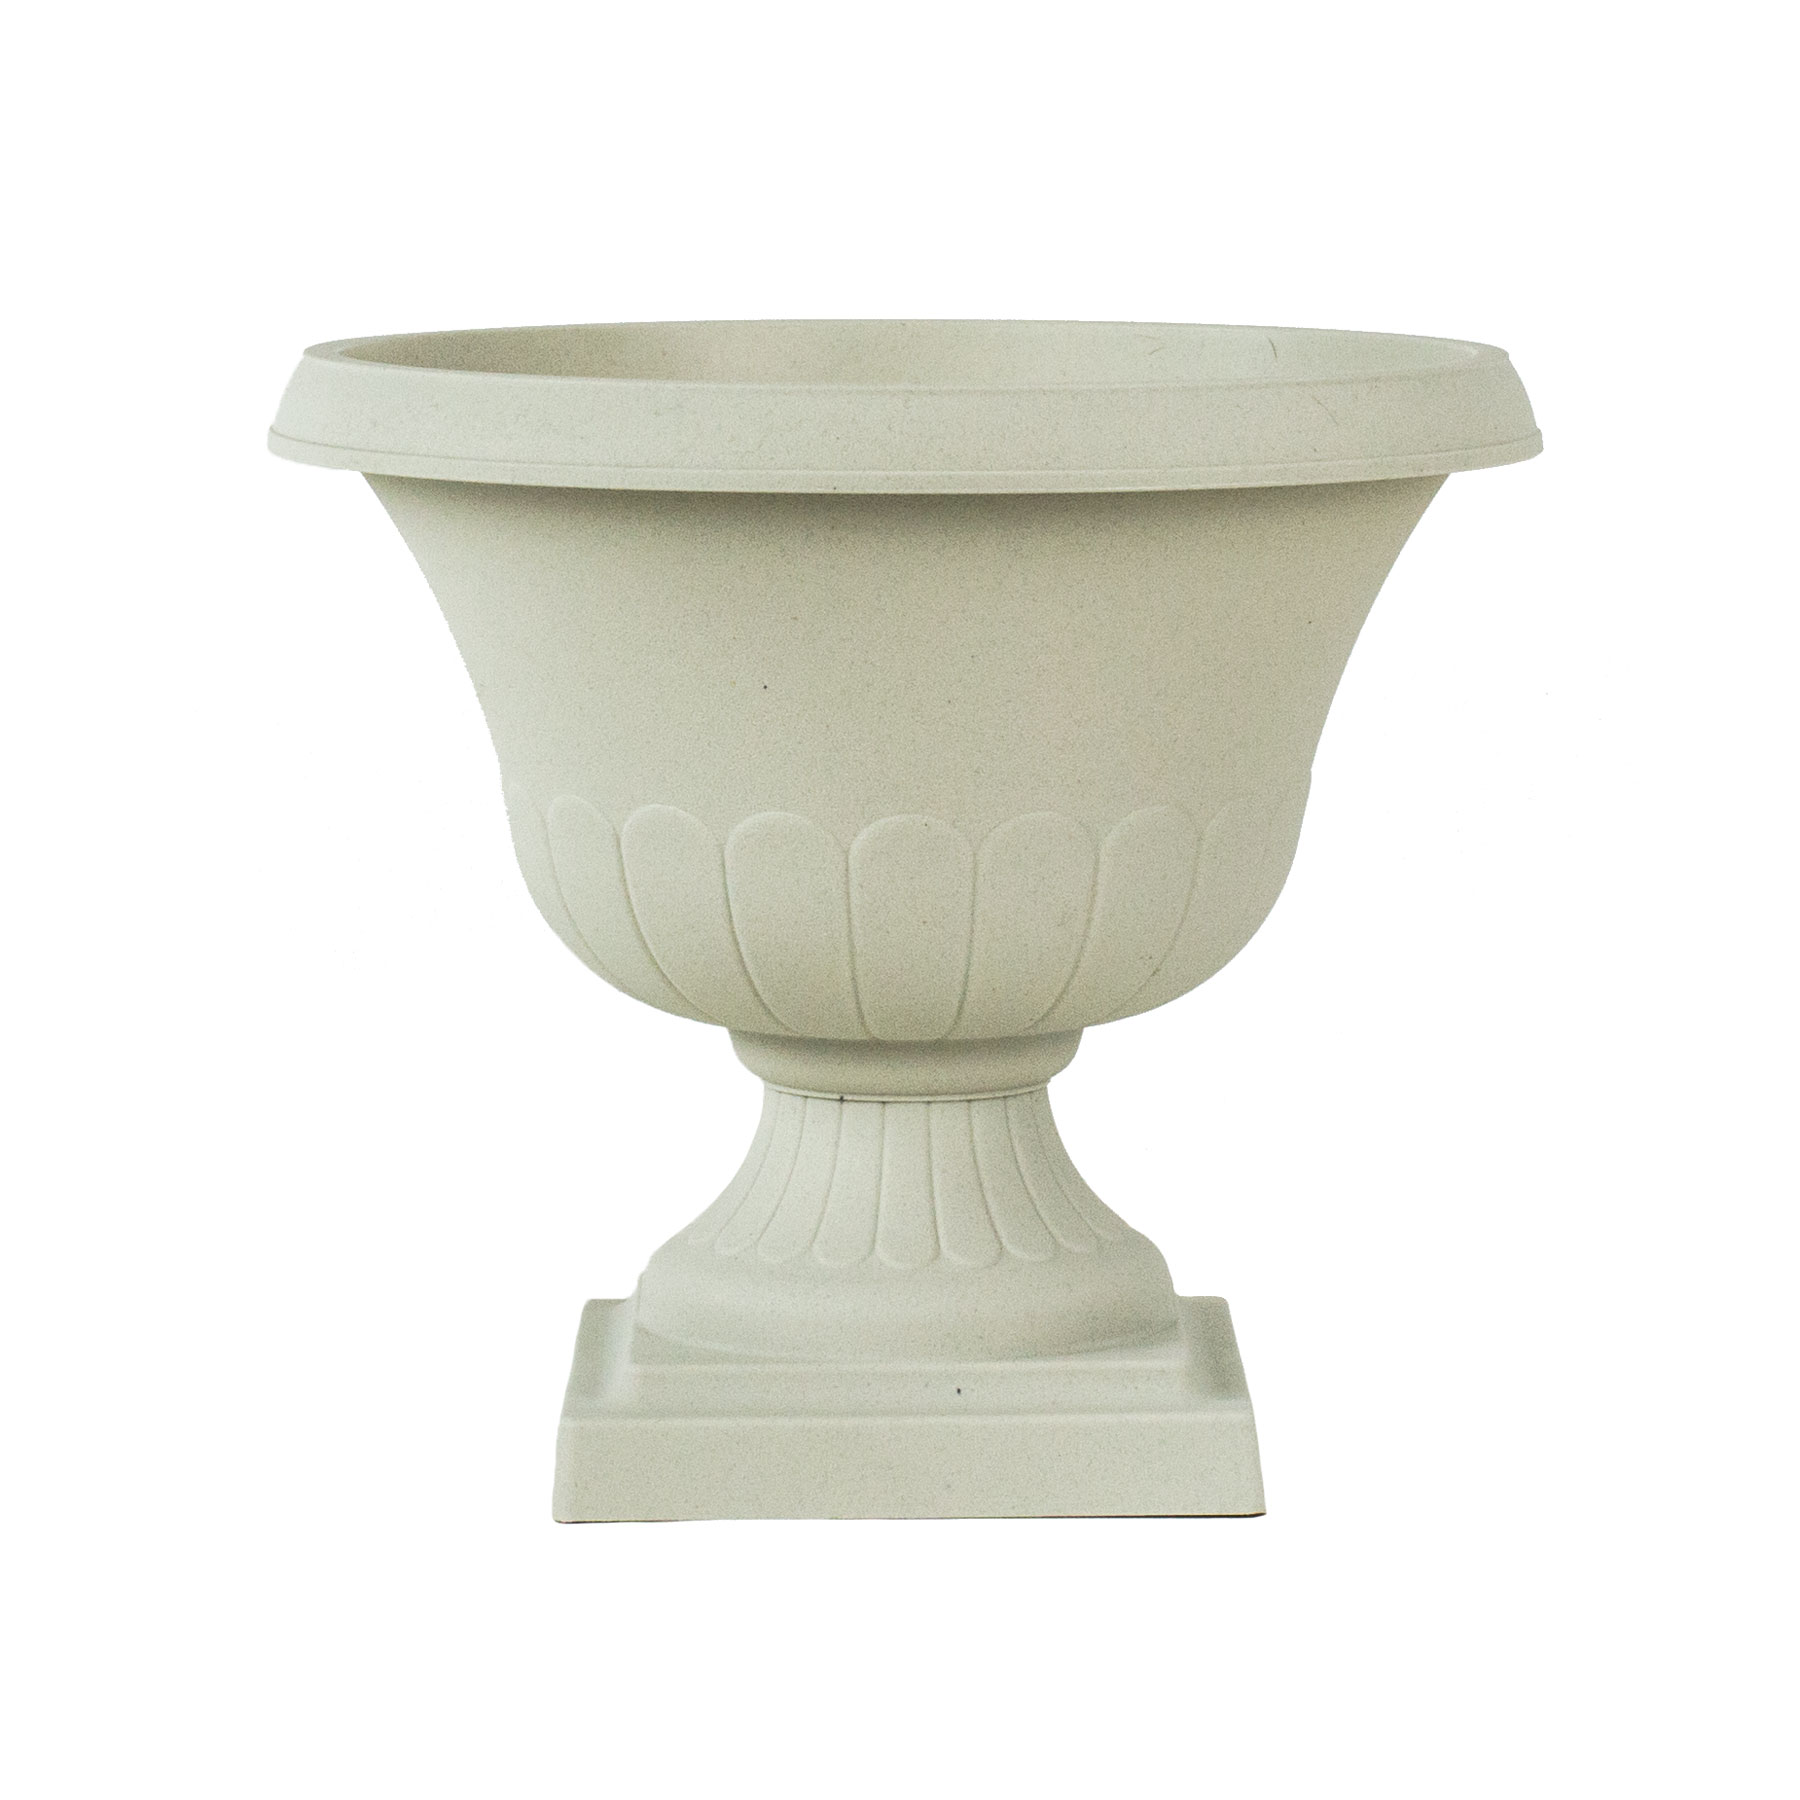 12 Inch Light Stone Taupe Classic Urn Planter for Indoor and Outdoor Use by